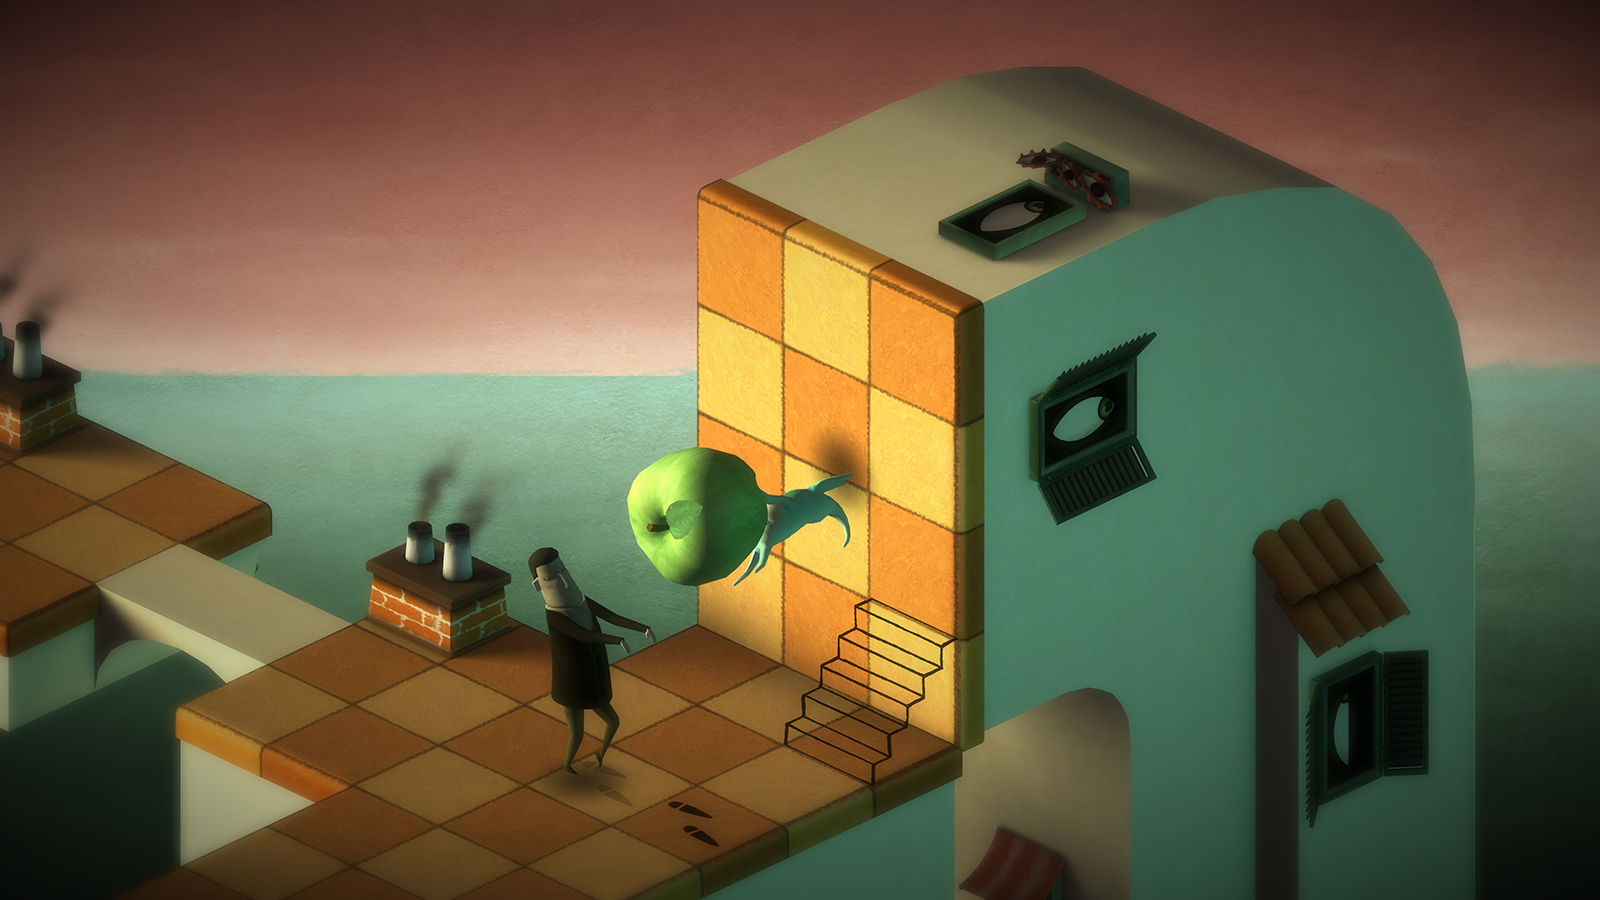 Surreal puzzler Back To Bed goes on sale for 99p / 99c